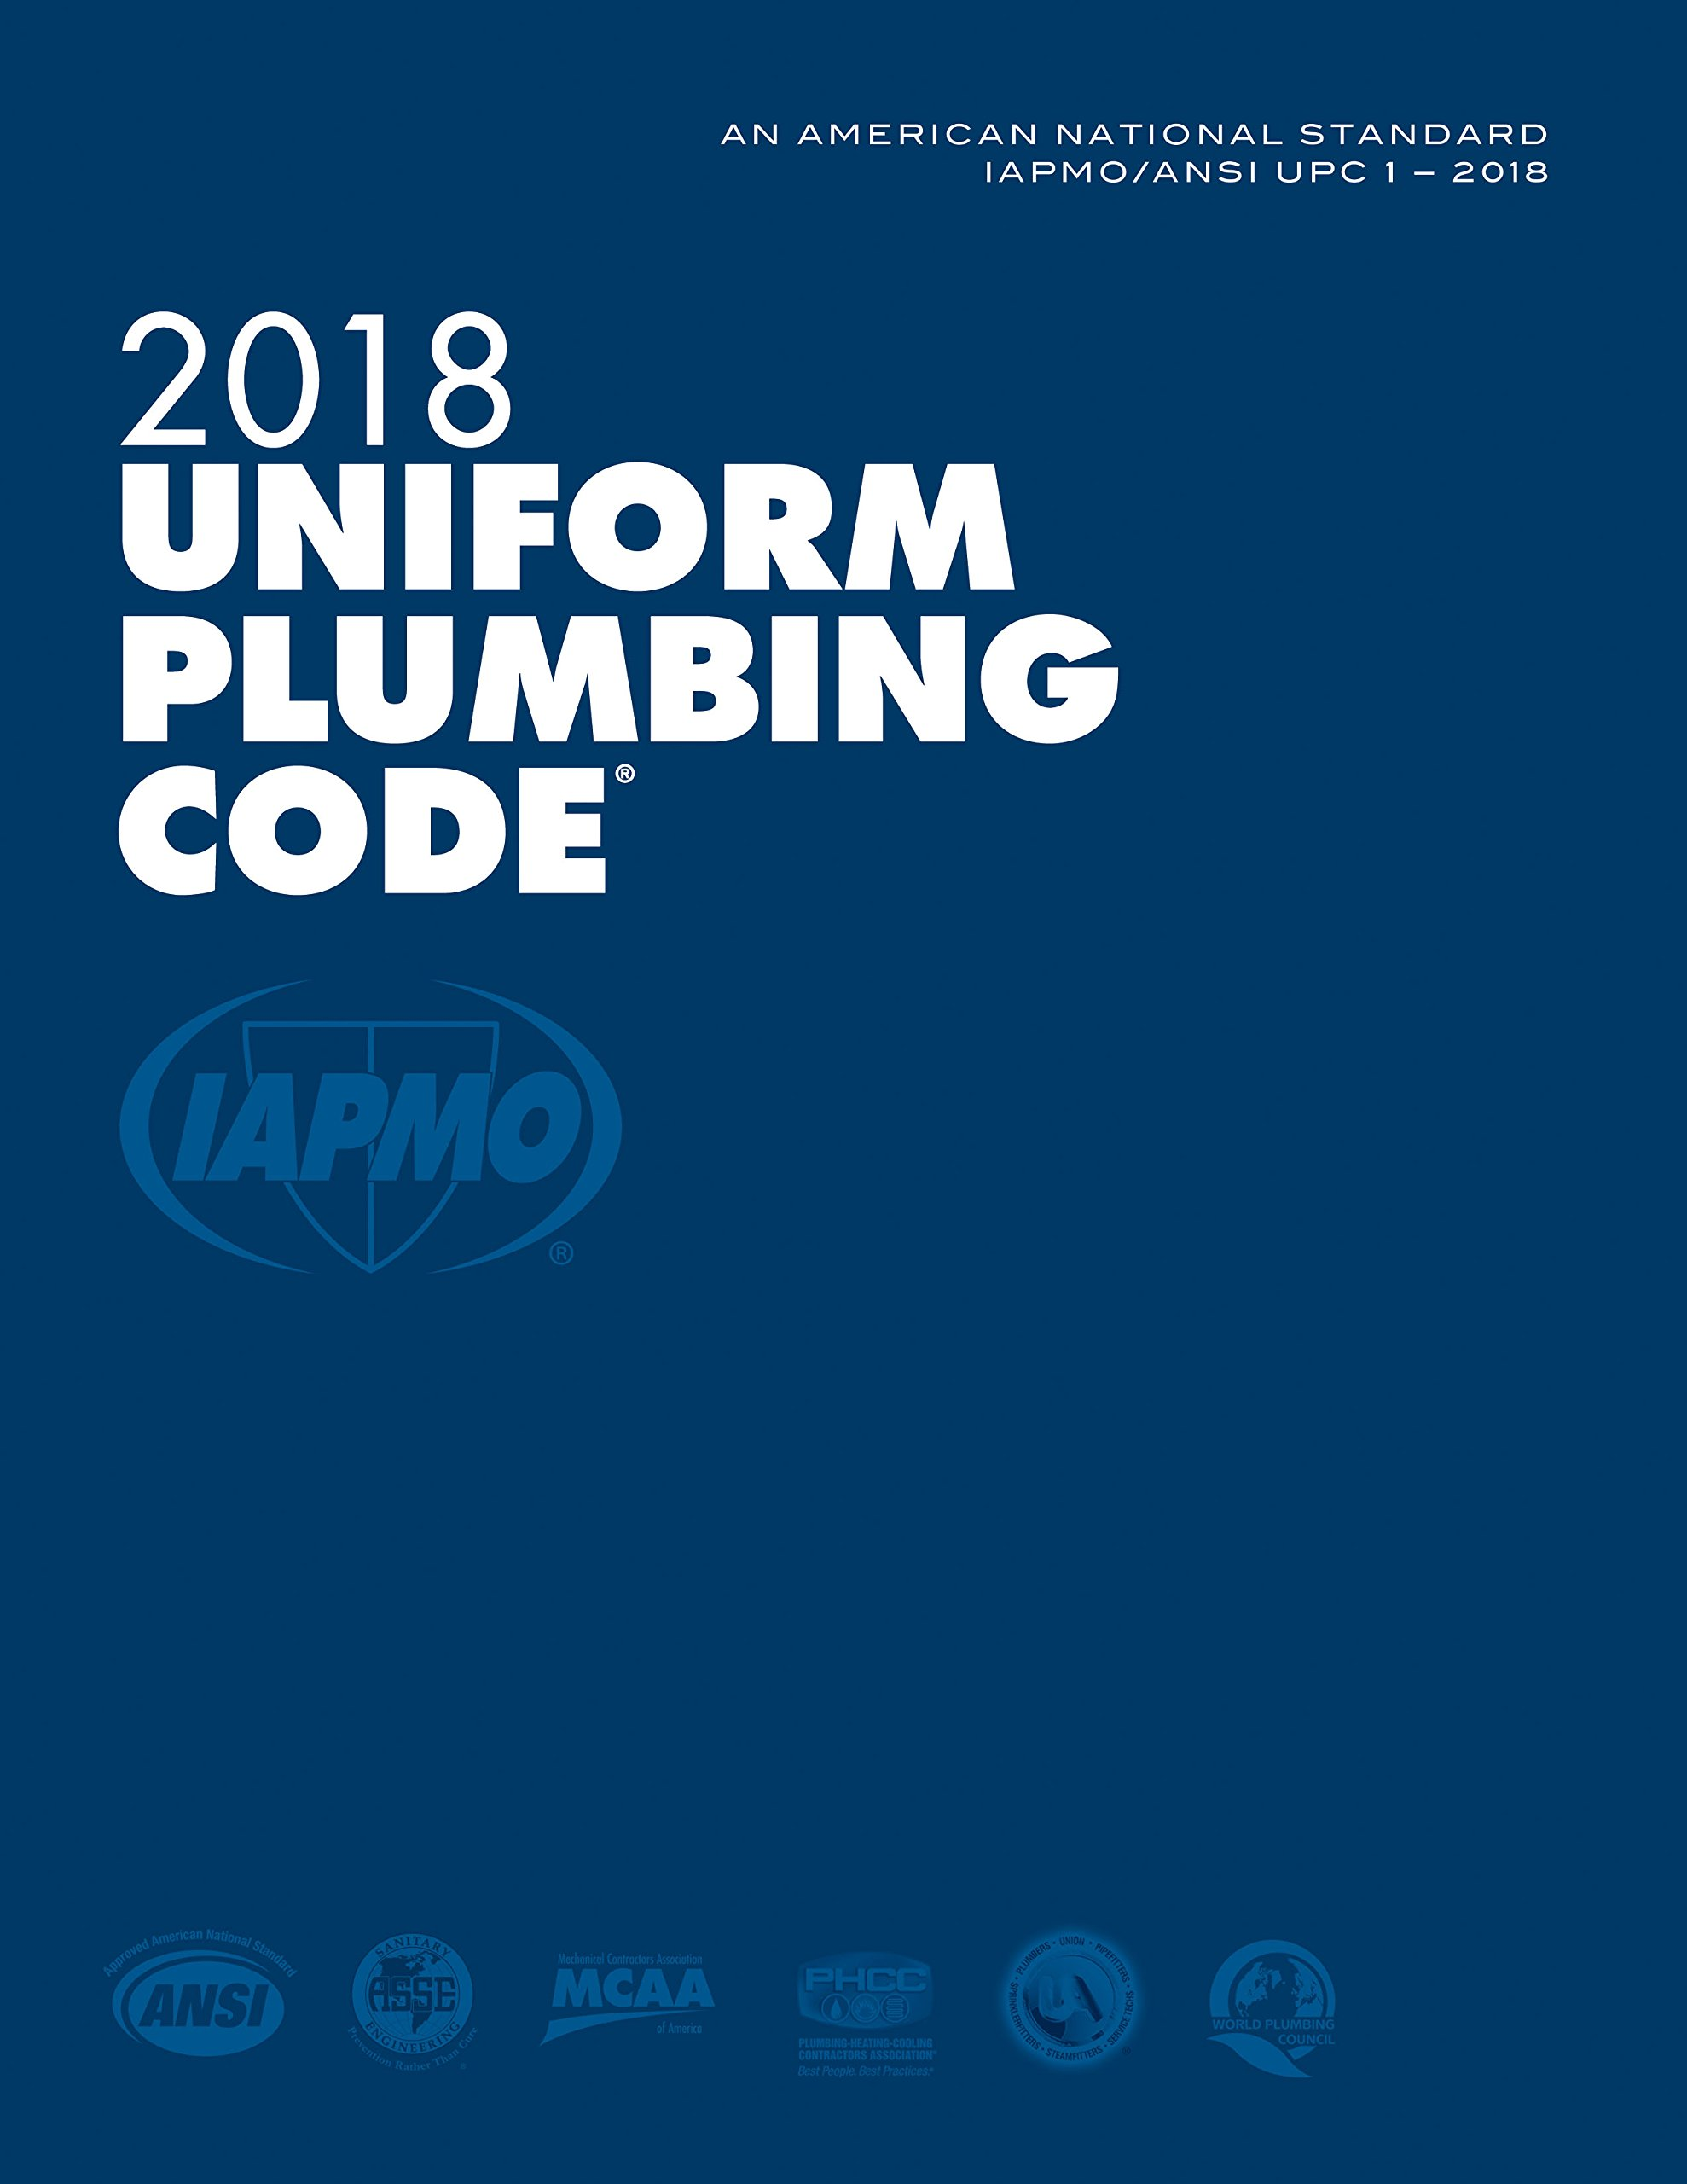 2018 Uniform Plumbing Code with Tabs by International Association of Plumbing and Mechanical Officials (IAPMO)